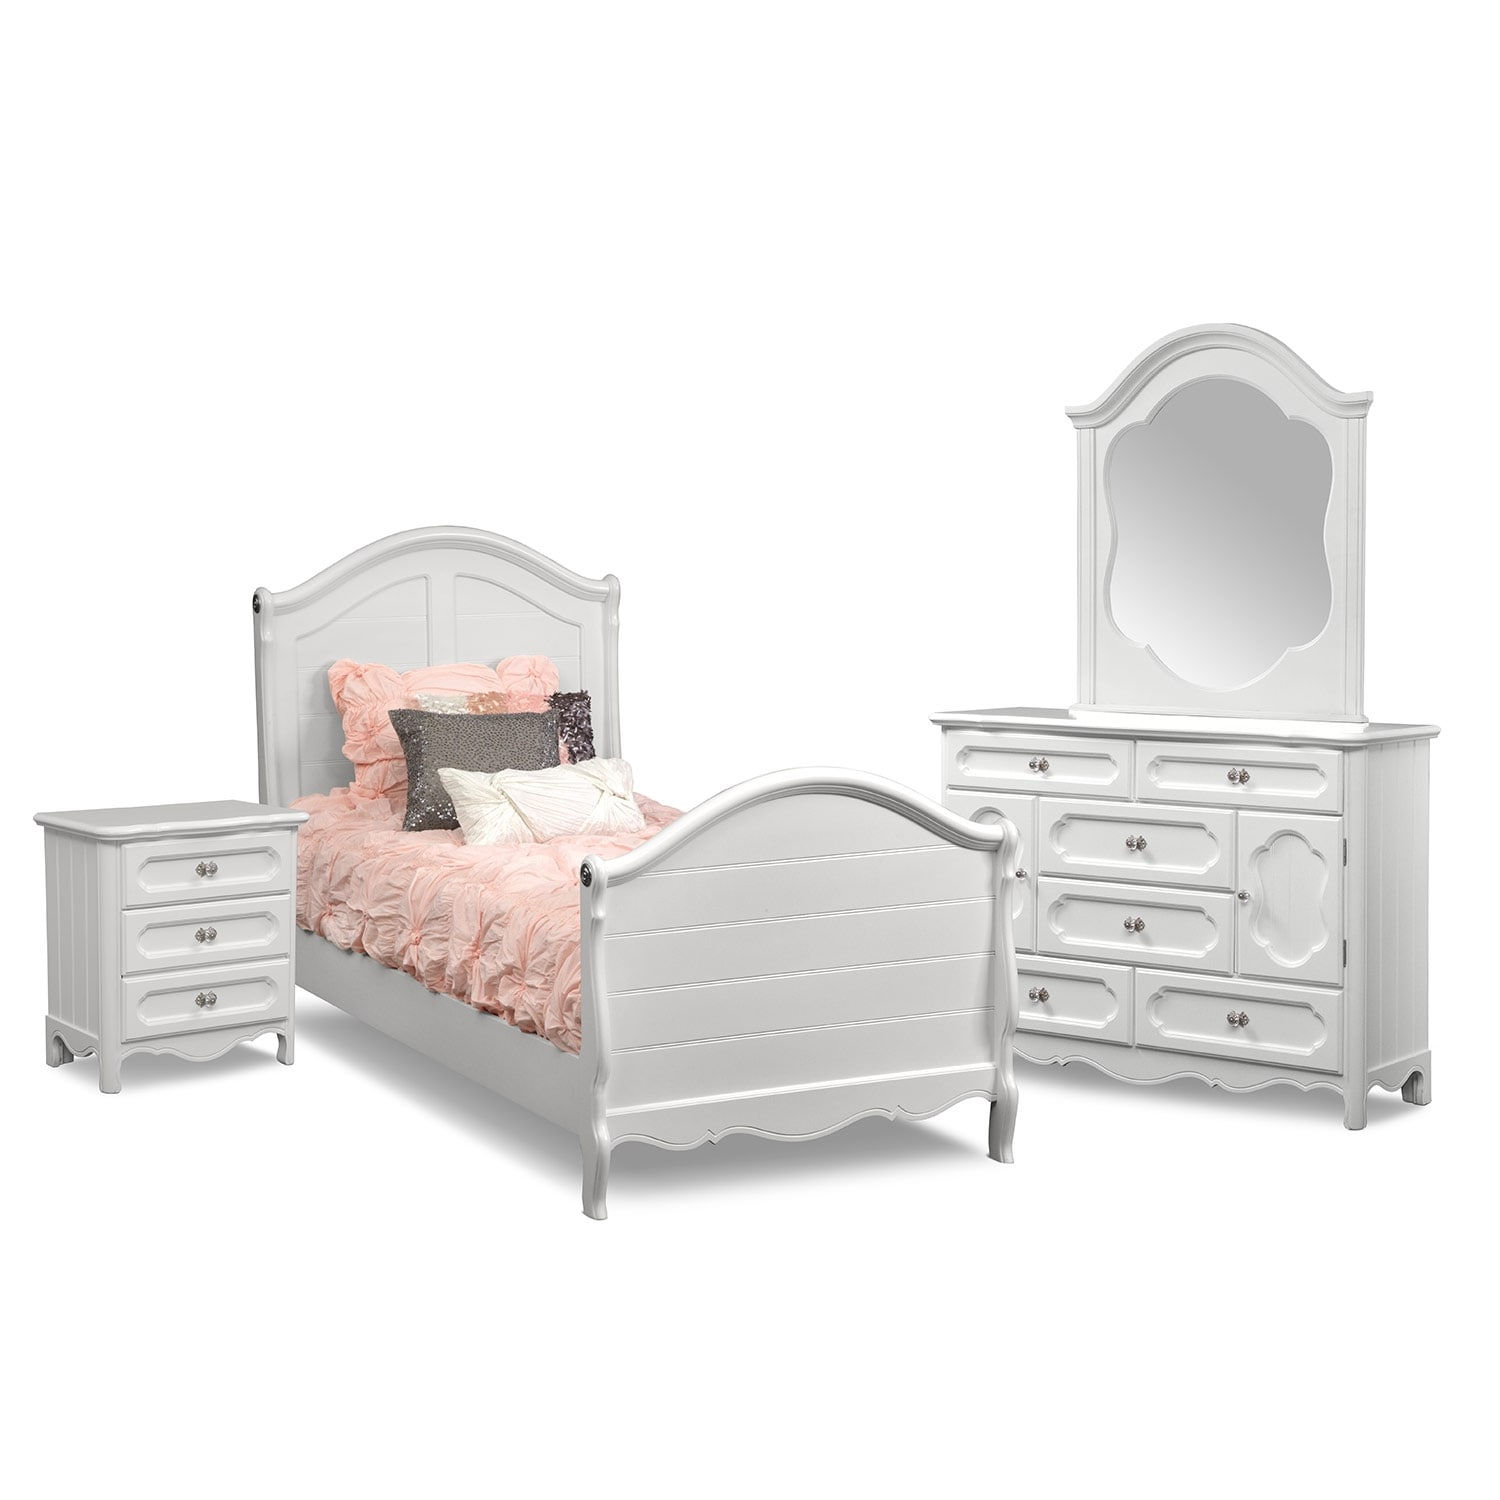 Carly 6 piece twin bedroom set white american for Signature furniture